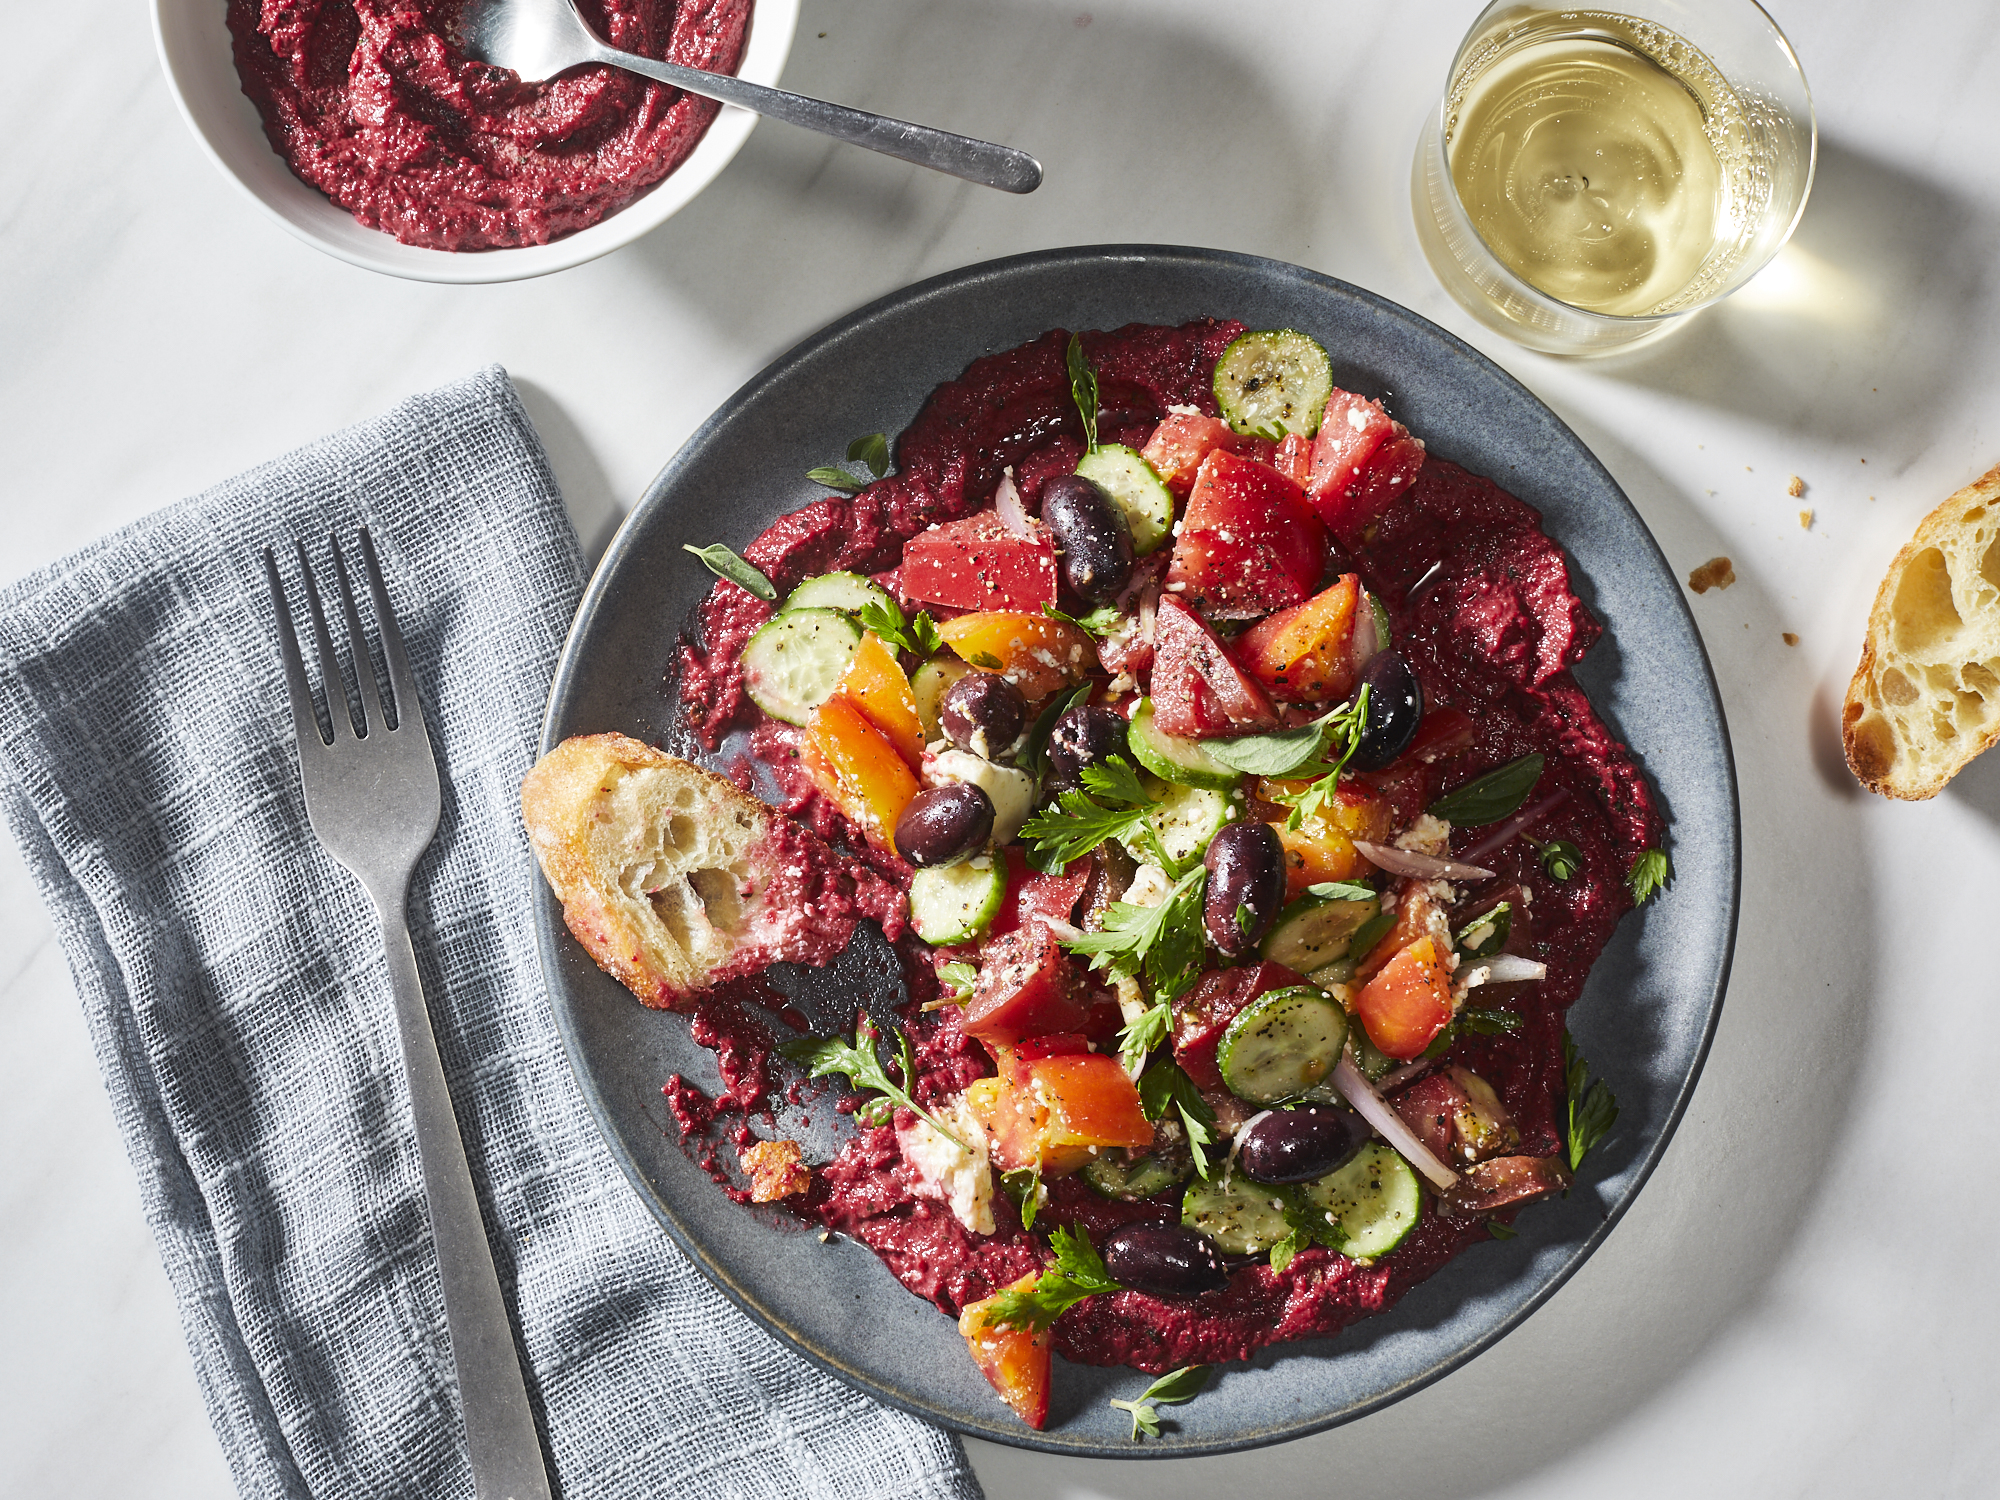 Horiatiki Salad with Beet Hummus